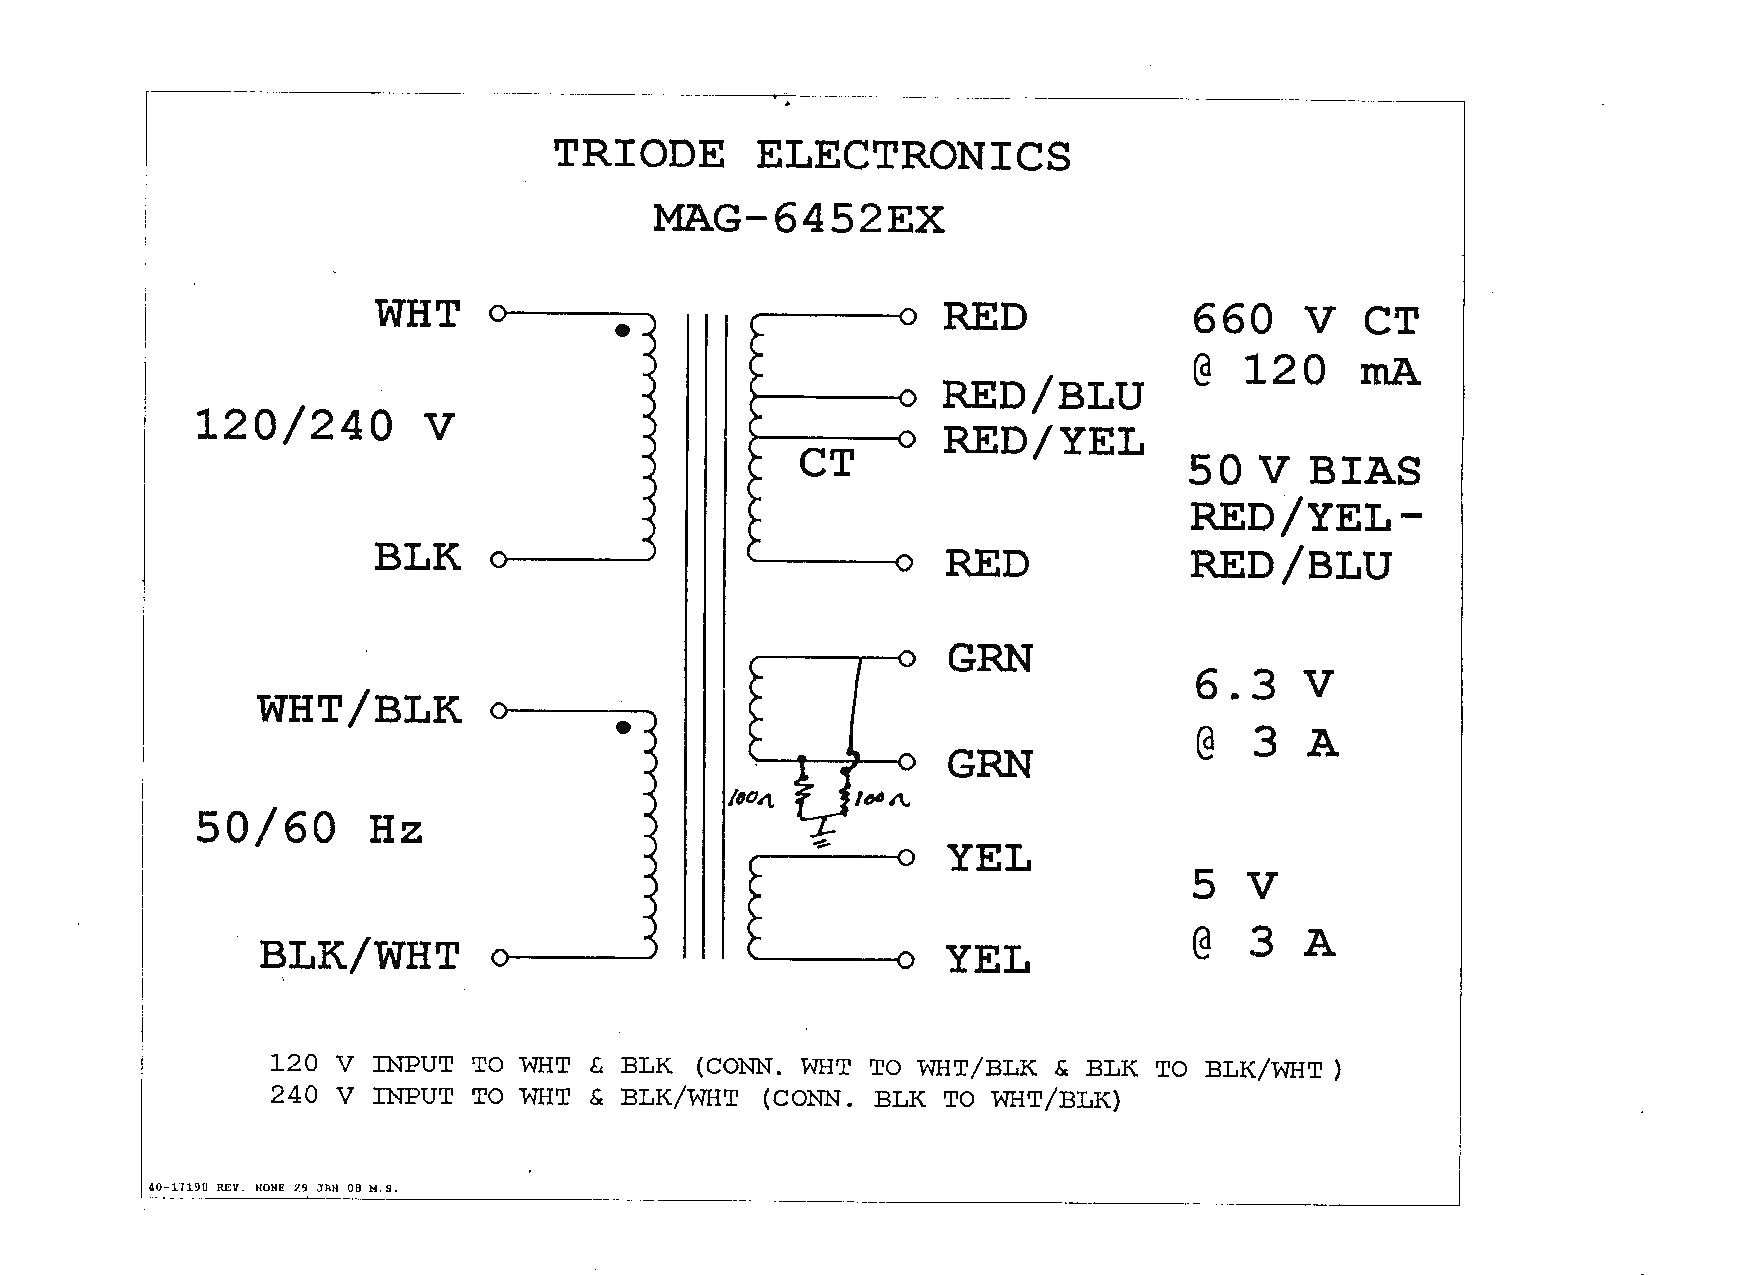 isolation transformer wiring diagram Collection-45 Kva Transformer Wiring Diagram Kva Transformer Wiring Transformer Wire Diagram Wiring Diagrams Schematics Fancy 13-c